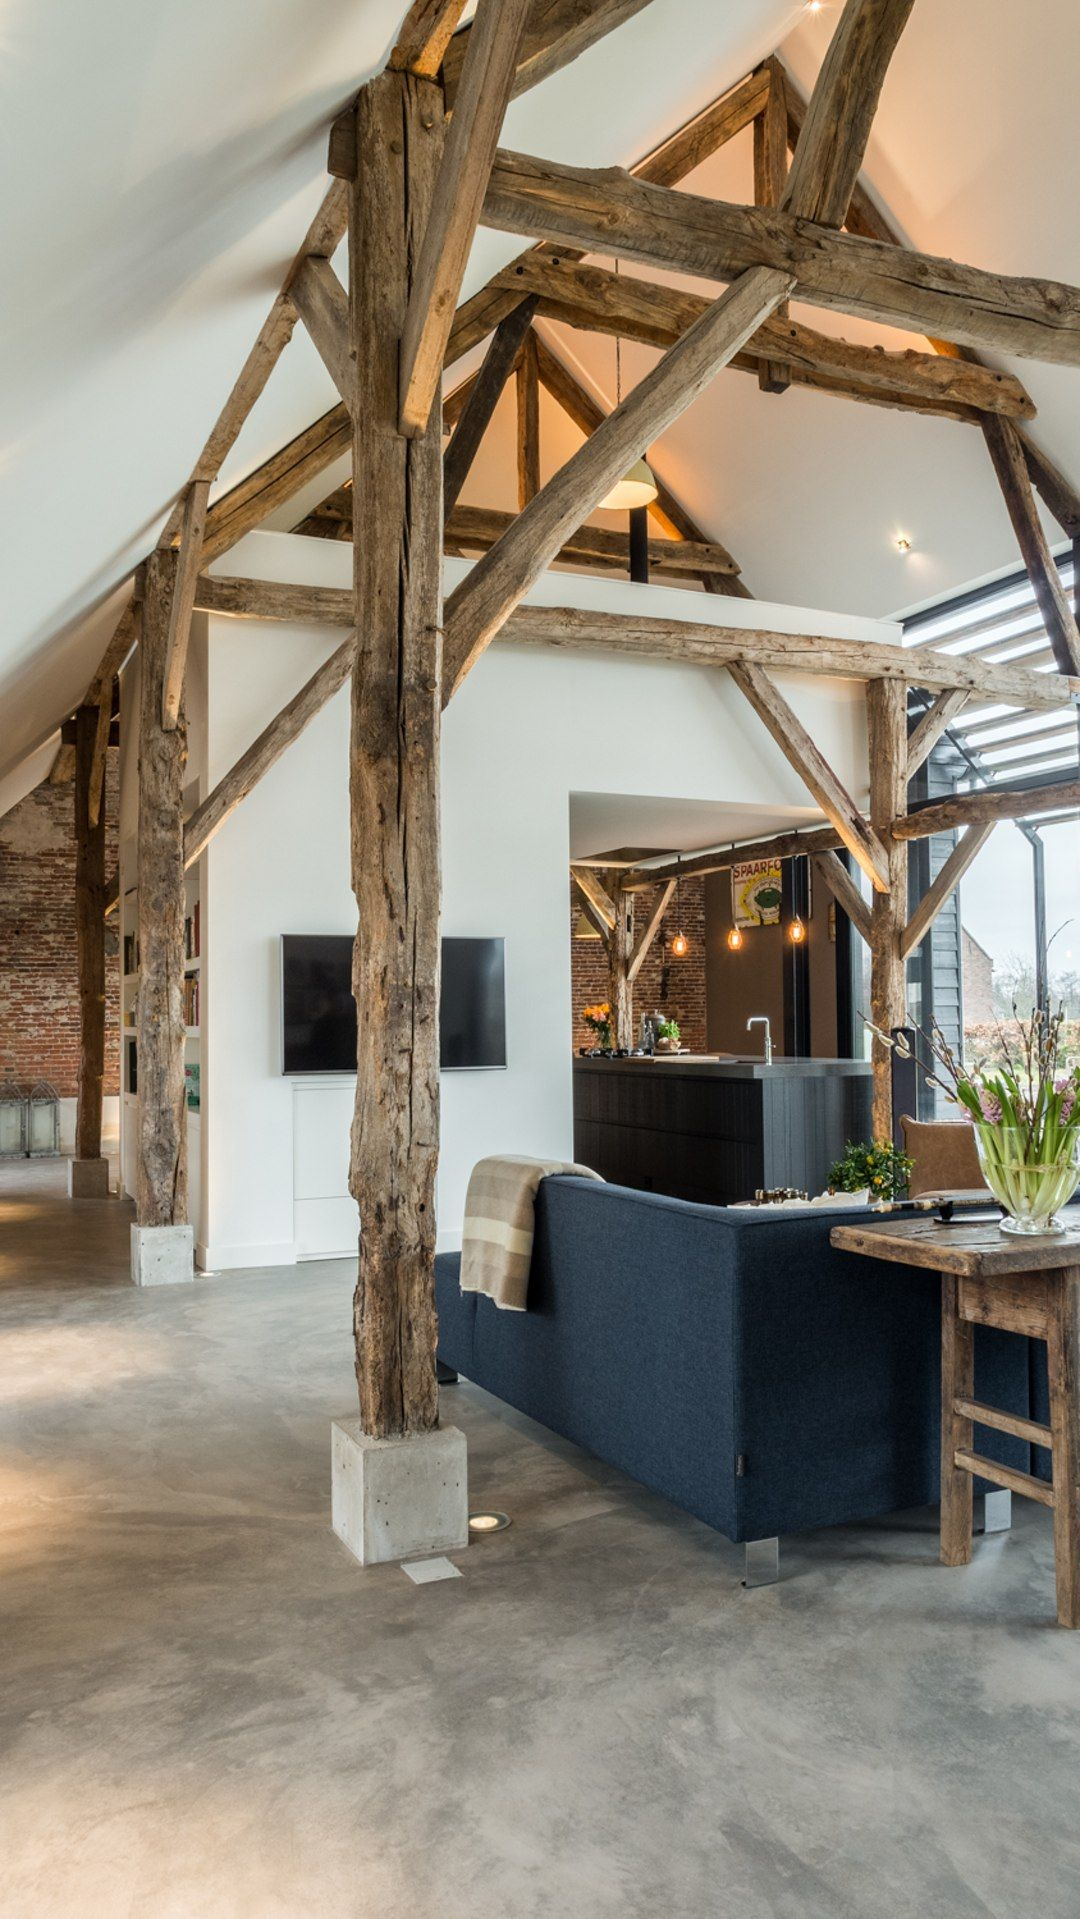 Converting An Old Farm Into A Warm Industrial Farmhouse With Big View On Brick